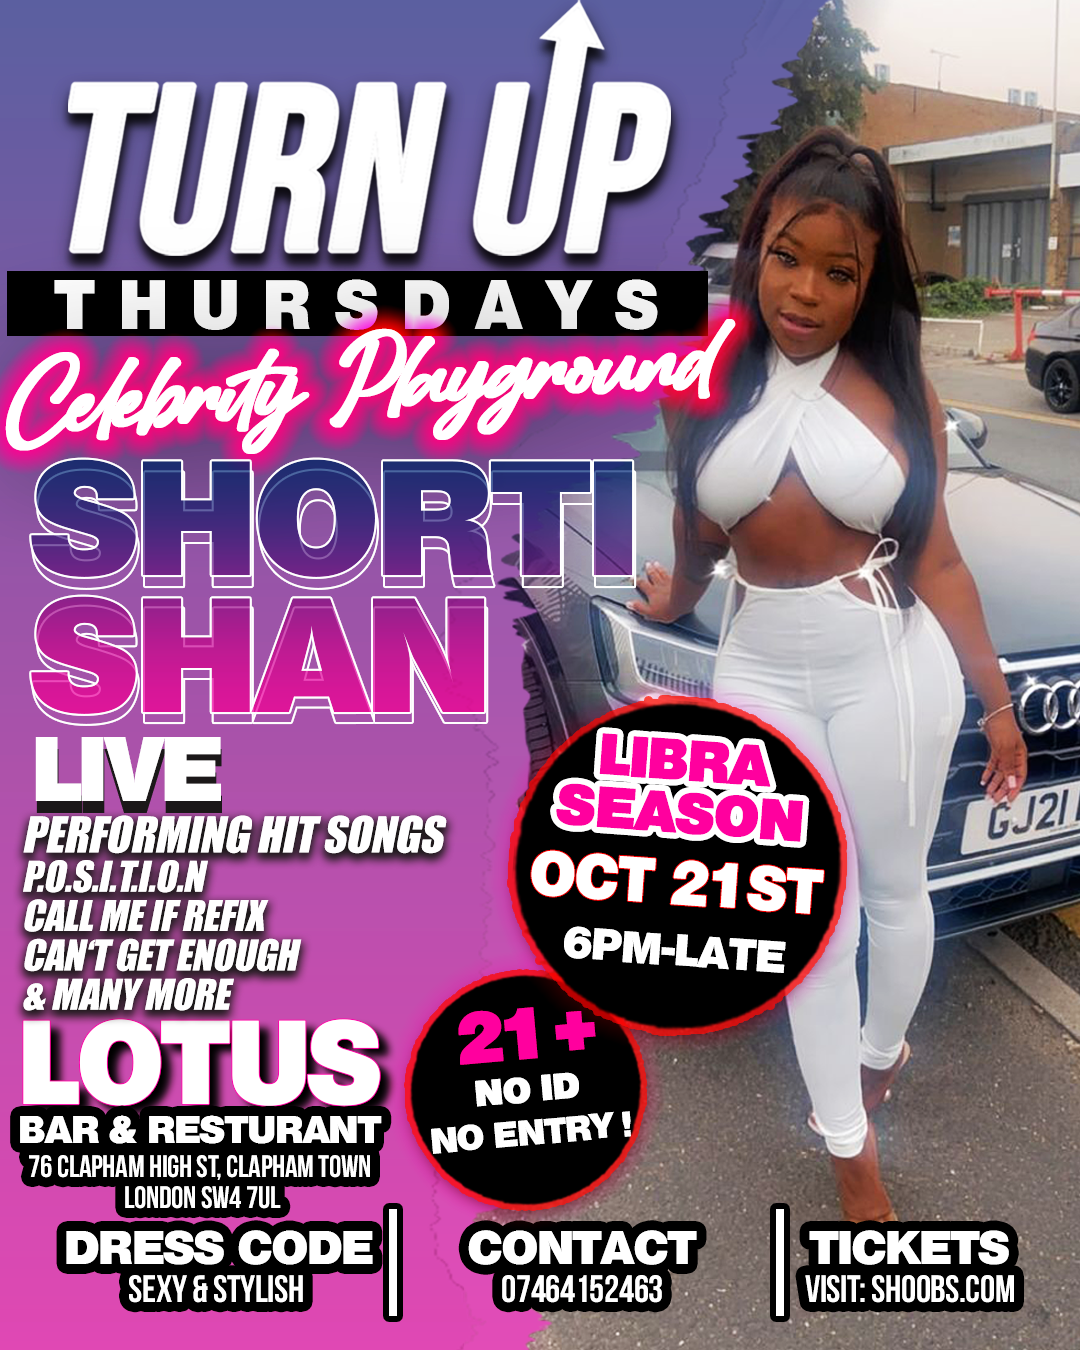 TURN UP THURSDAYS - A NIGHT OUT WITH SHORTI SHAN